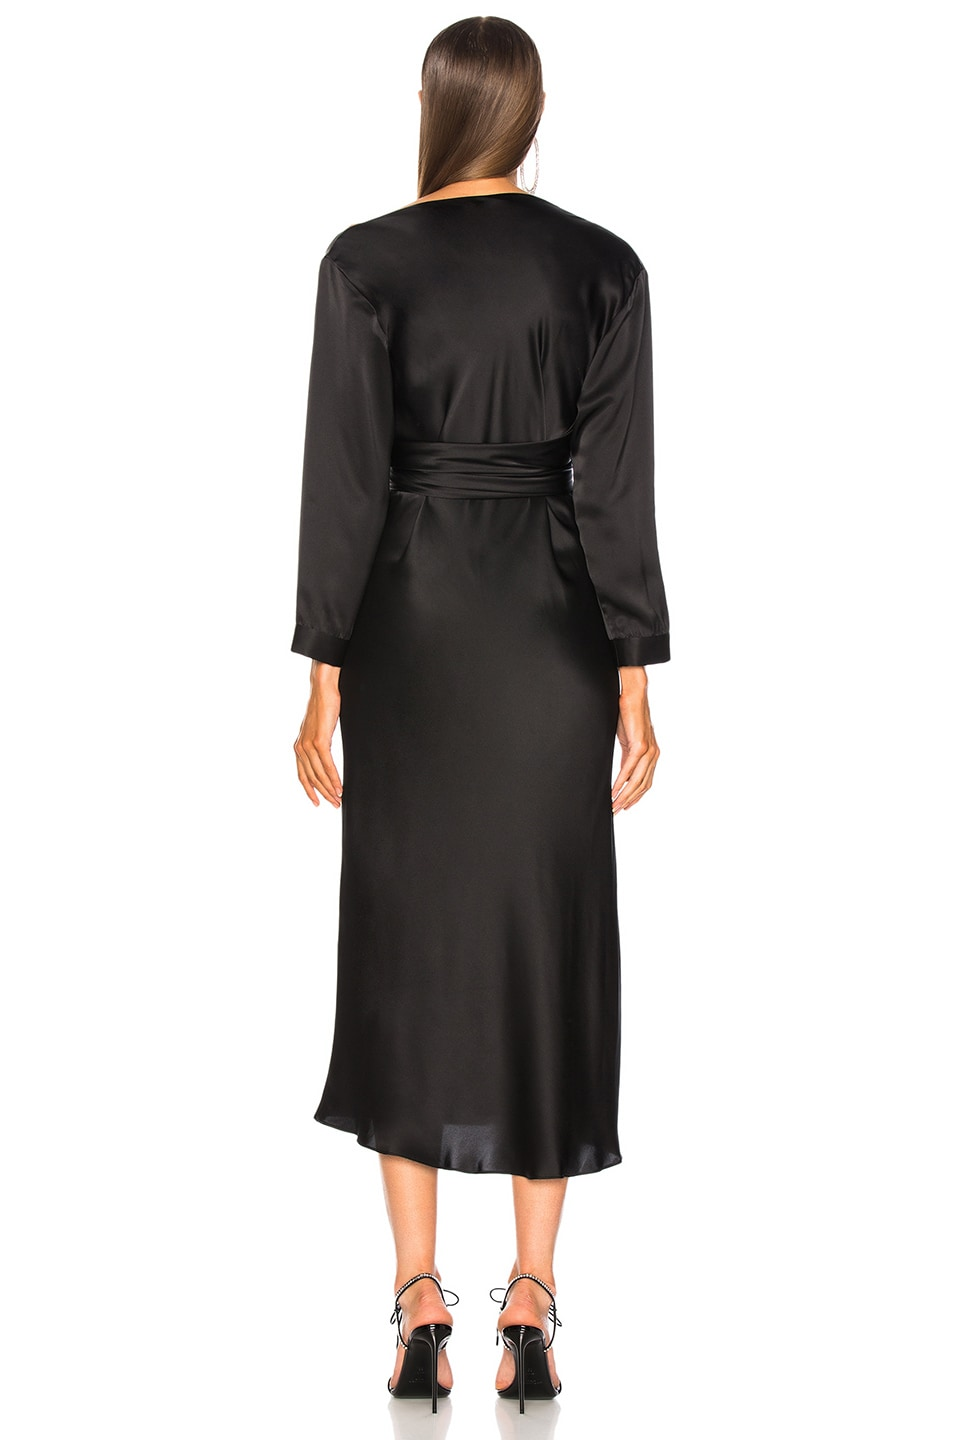 Image 4 of Michelle Mason Asymmetrical Dress With Tie in Black